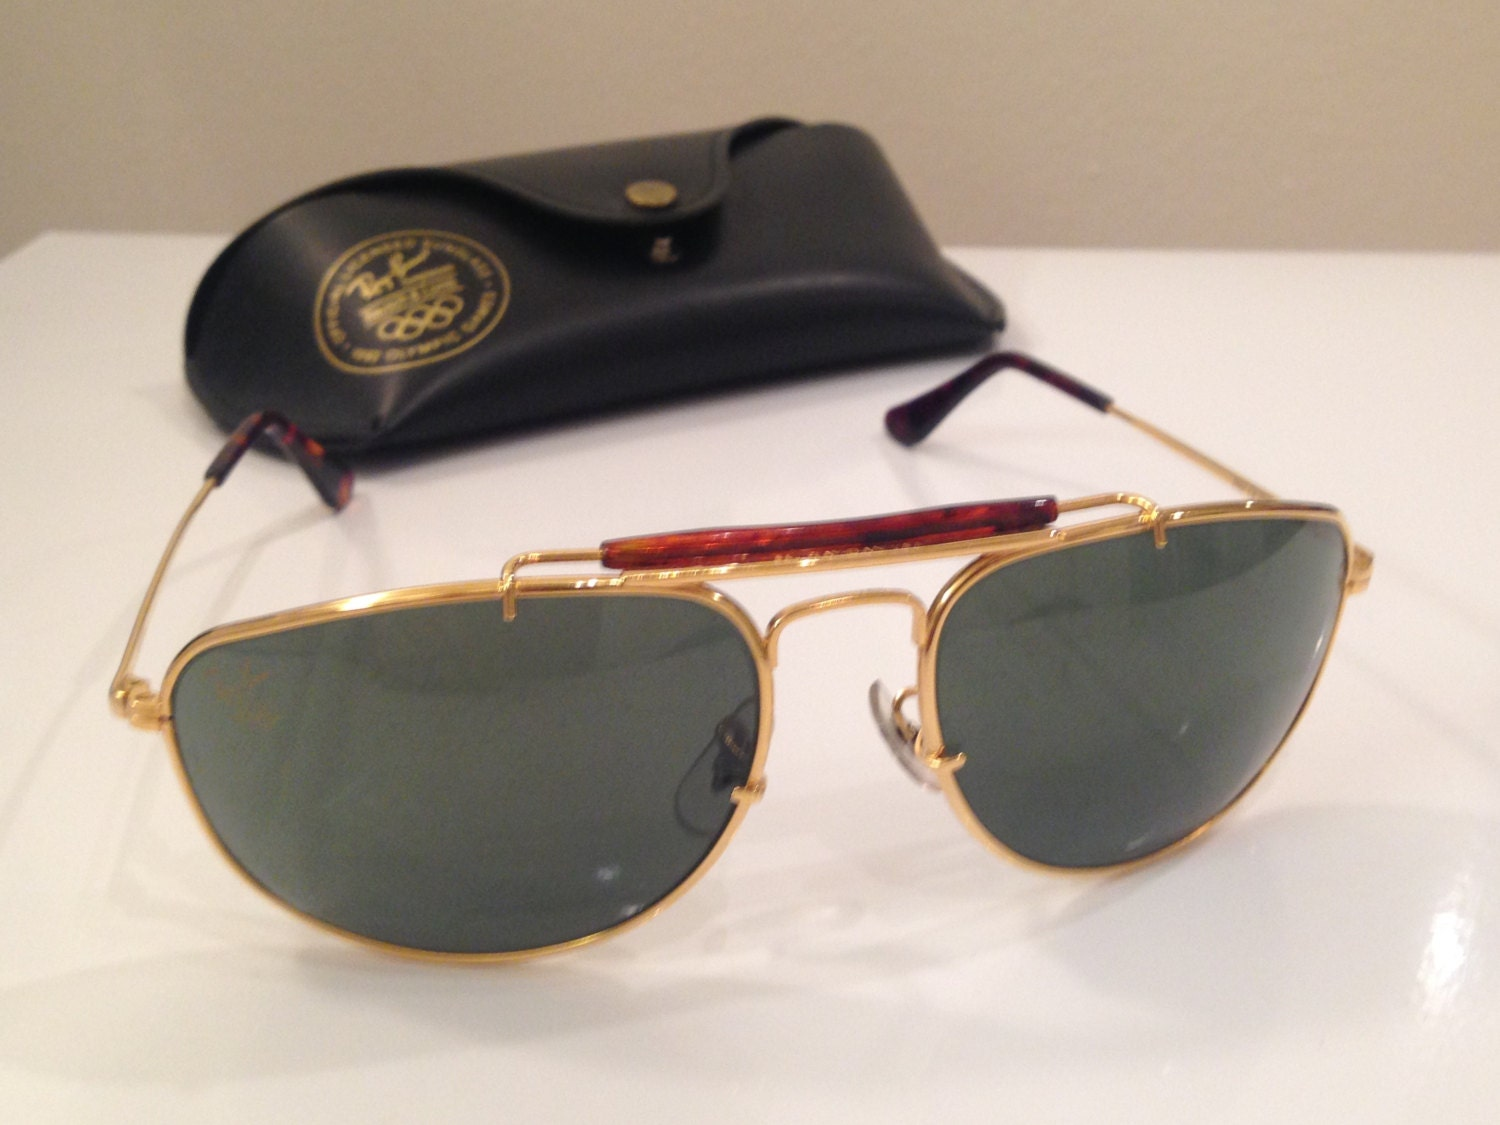 a2a22ff63cbc4 Vintage Ray Ban Sunglasses From 1992